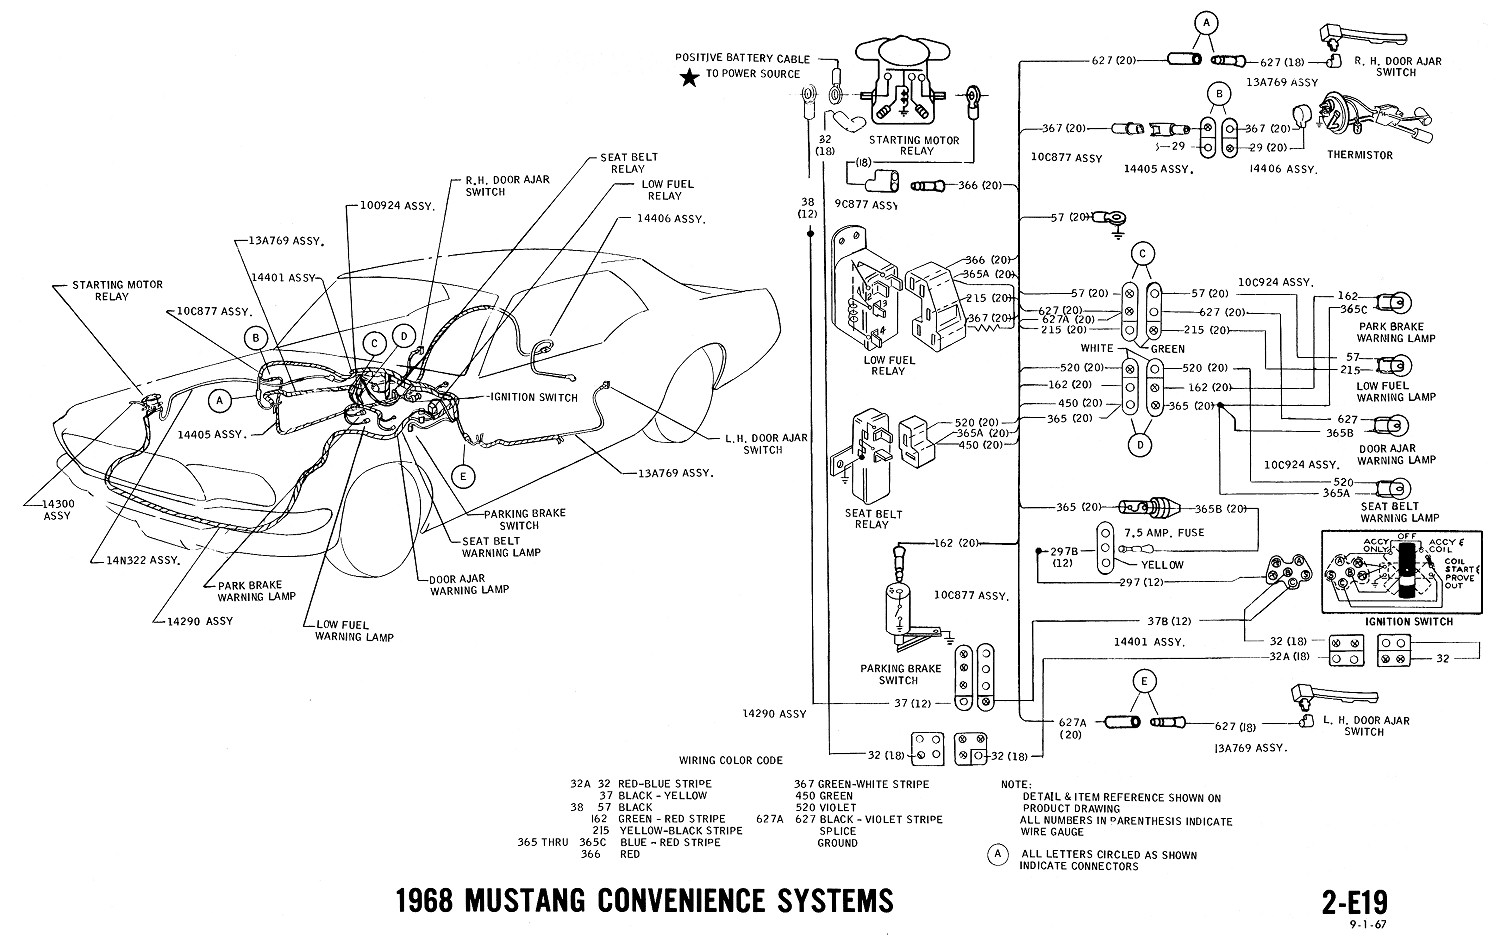 Diagram 65 Mustang Heater Wiring Diagram Full Version Hd Quality Wiring Diagram Wiringservi2 Creasitionline It